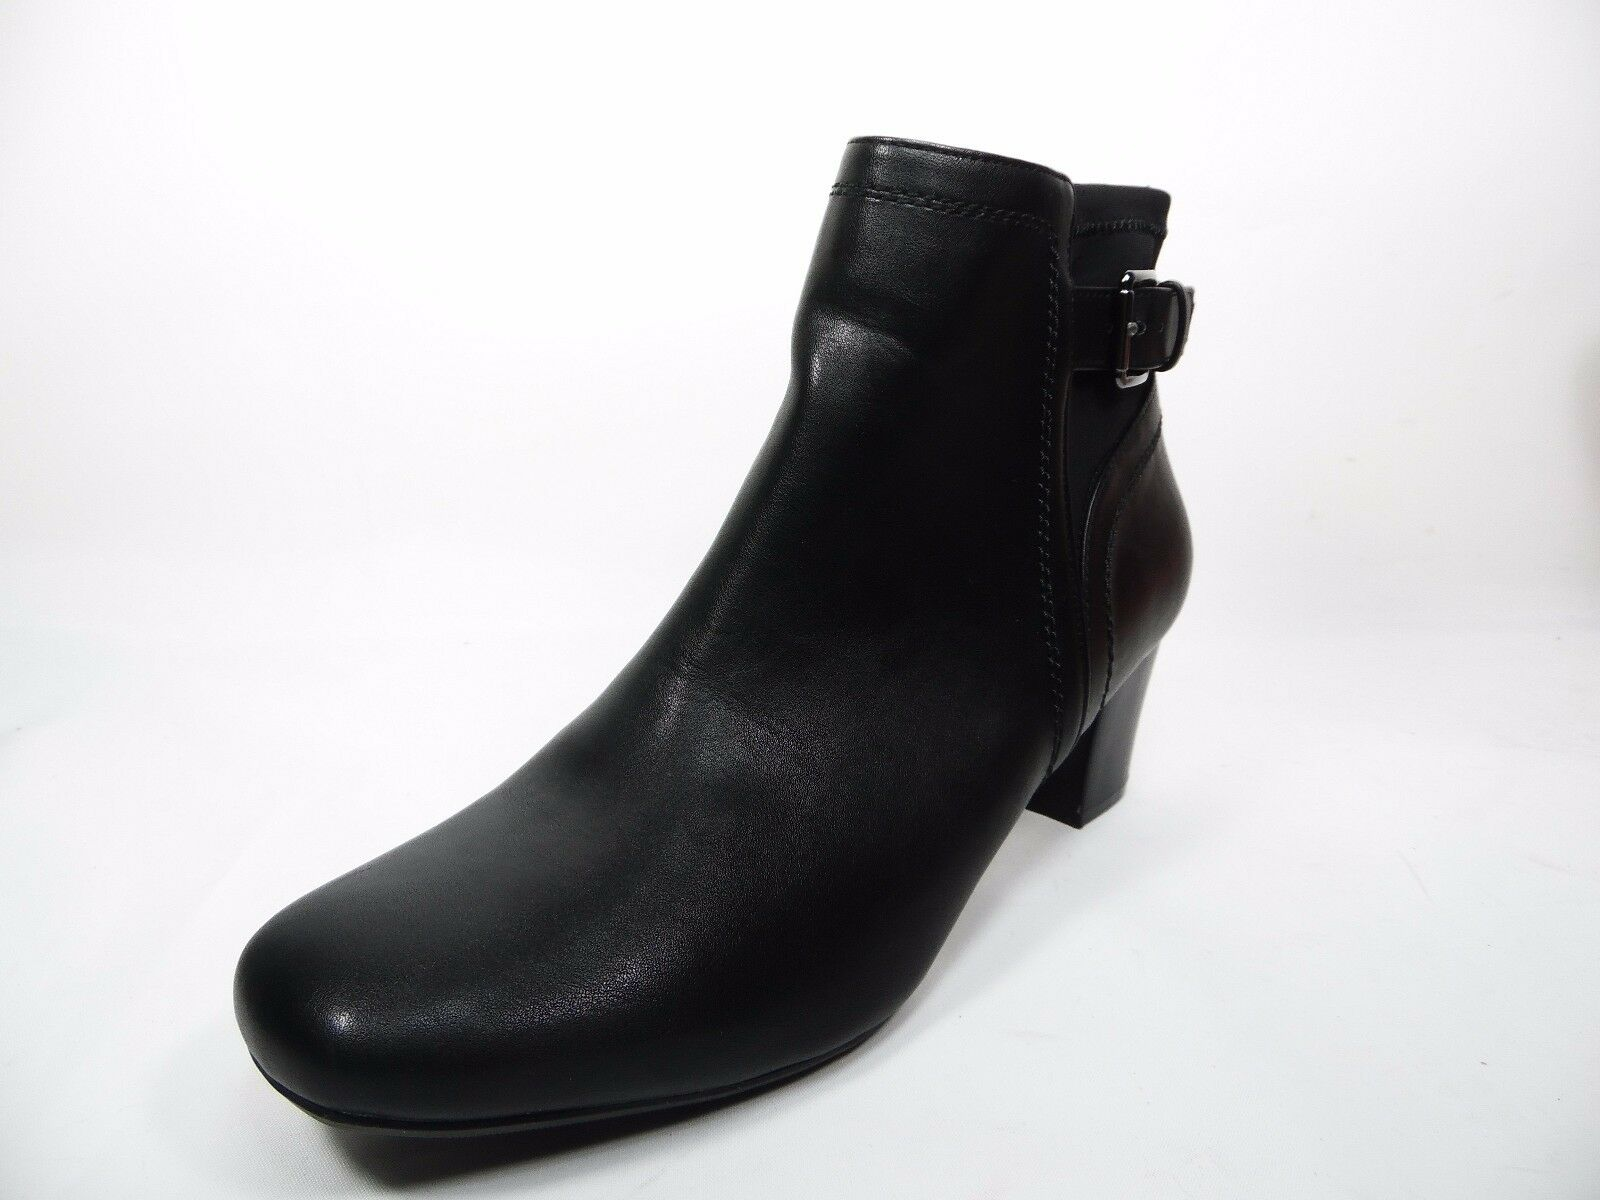 East 5th  Rico Heeled Ankle Boots BLack Size 7.5W